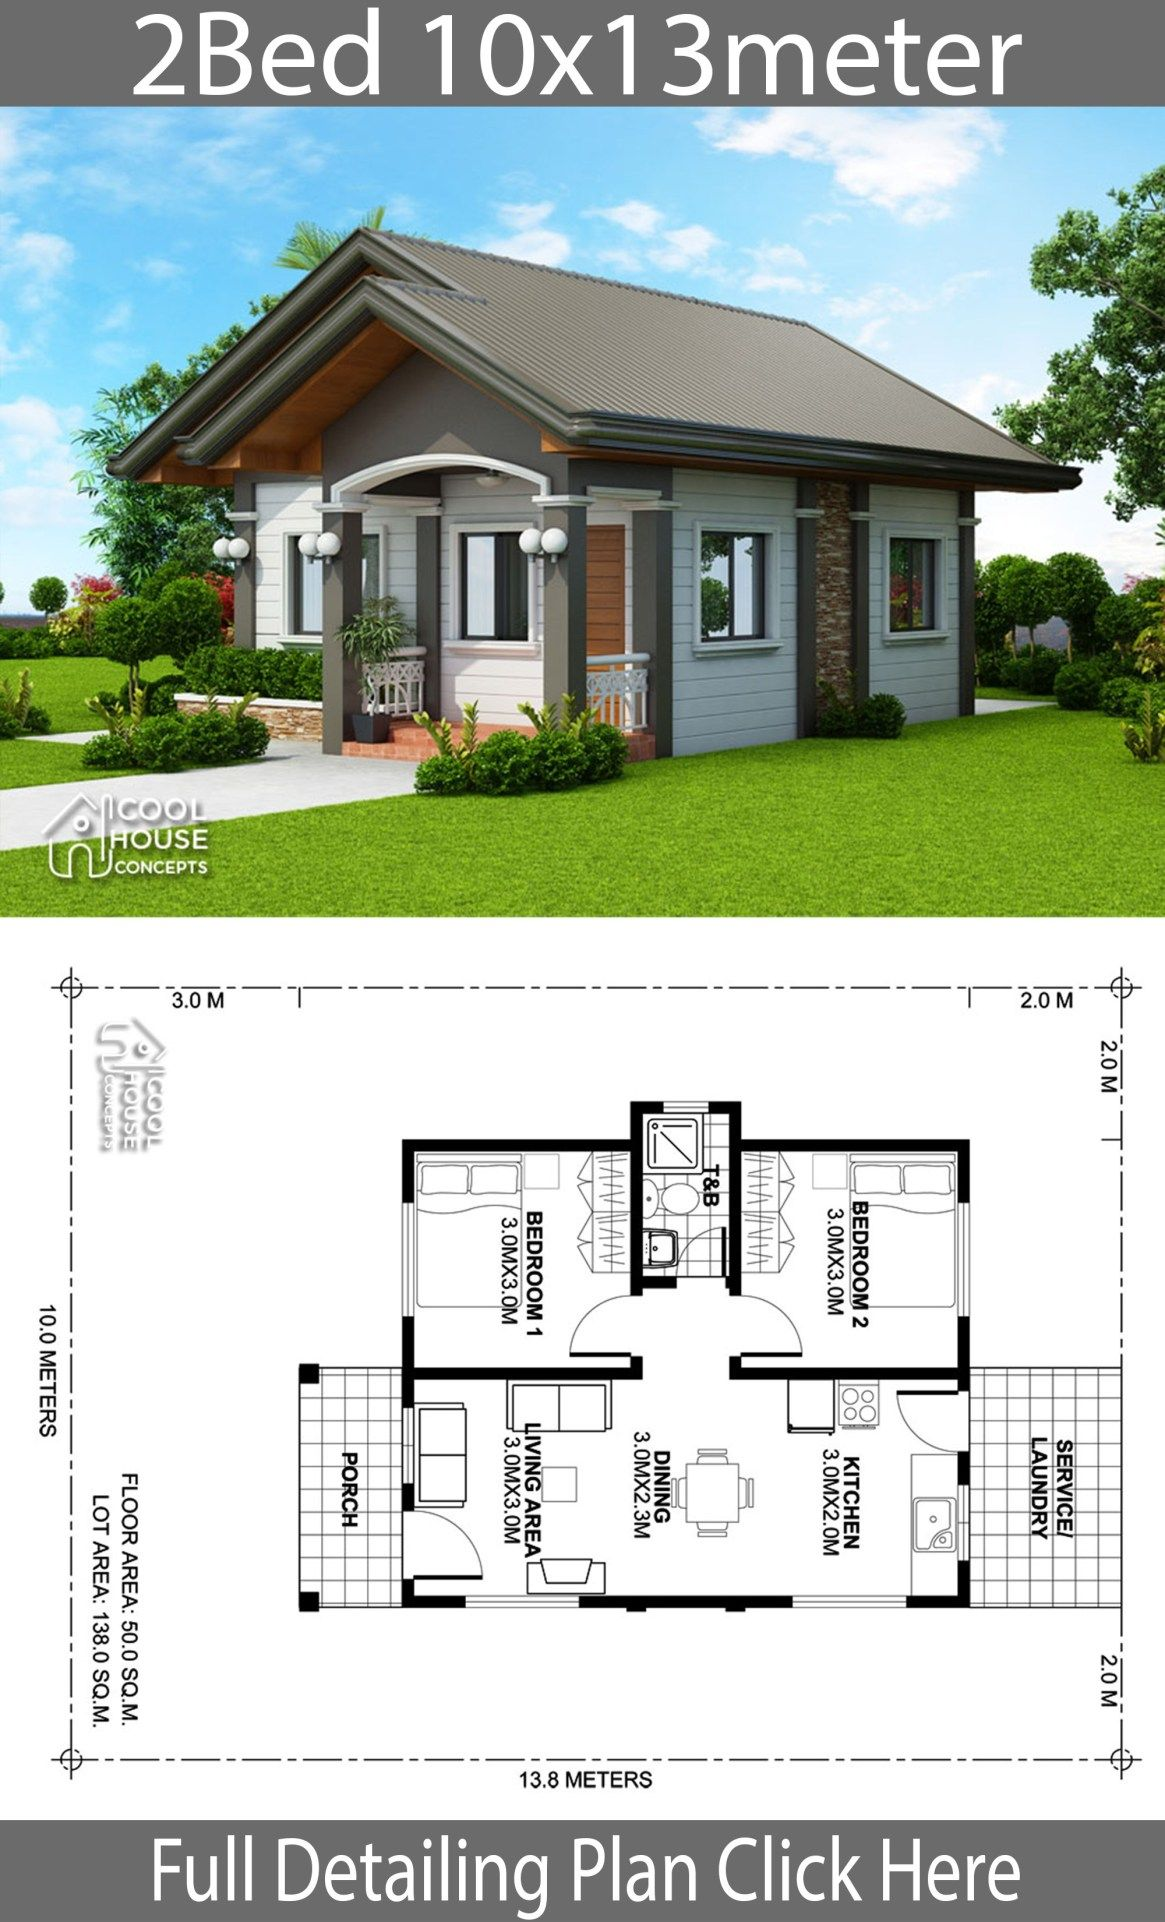 Home Design Plan 10x13m With 2 Bedrooms My House Plans Simple